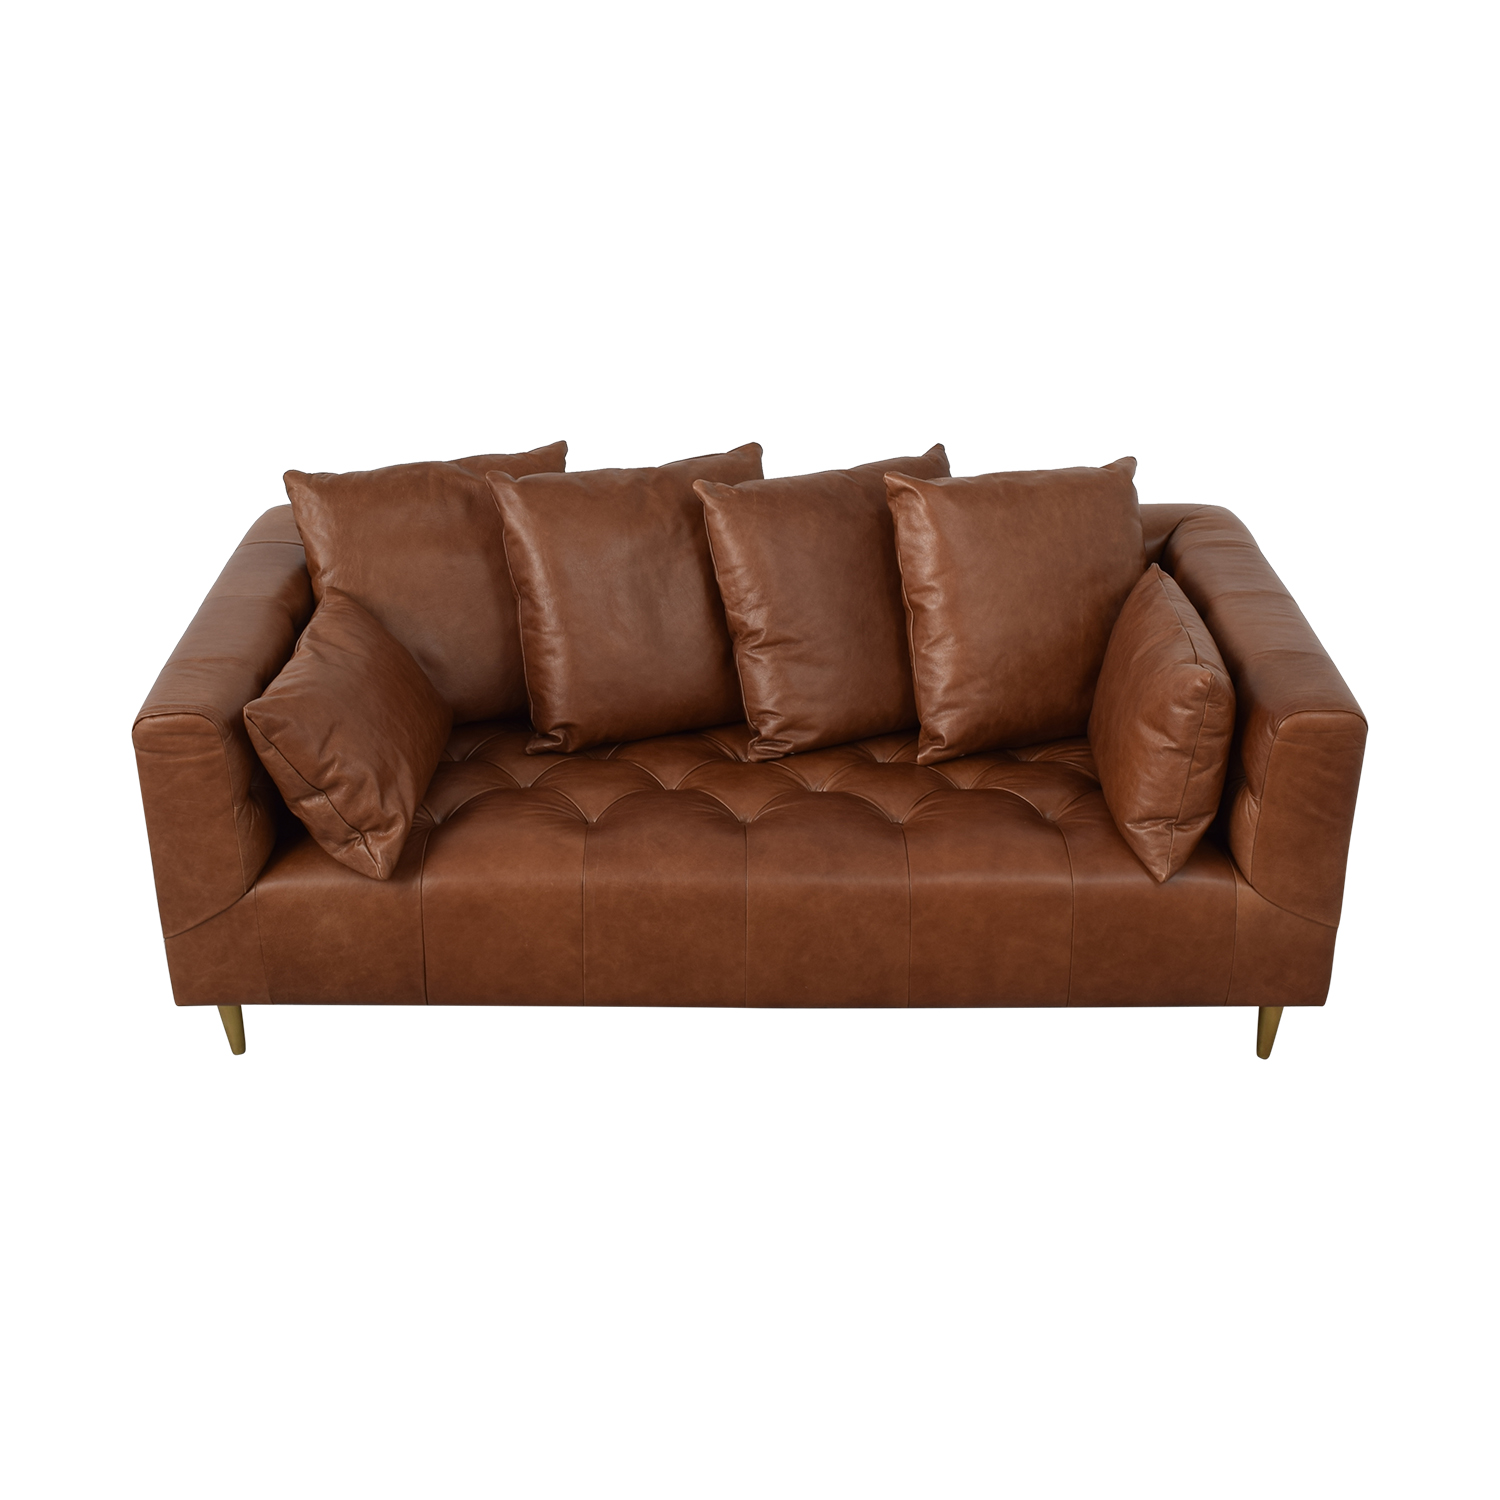 Interior Define Ms. Chesterfield Cognac Tufted Sofa brown